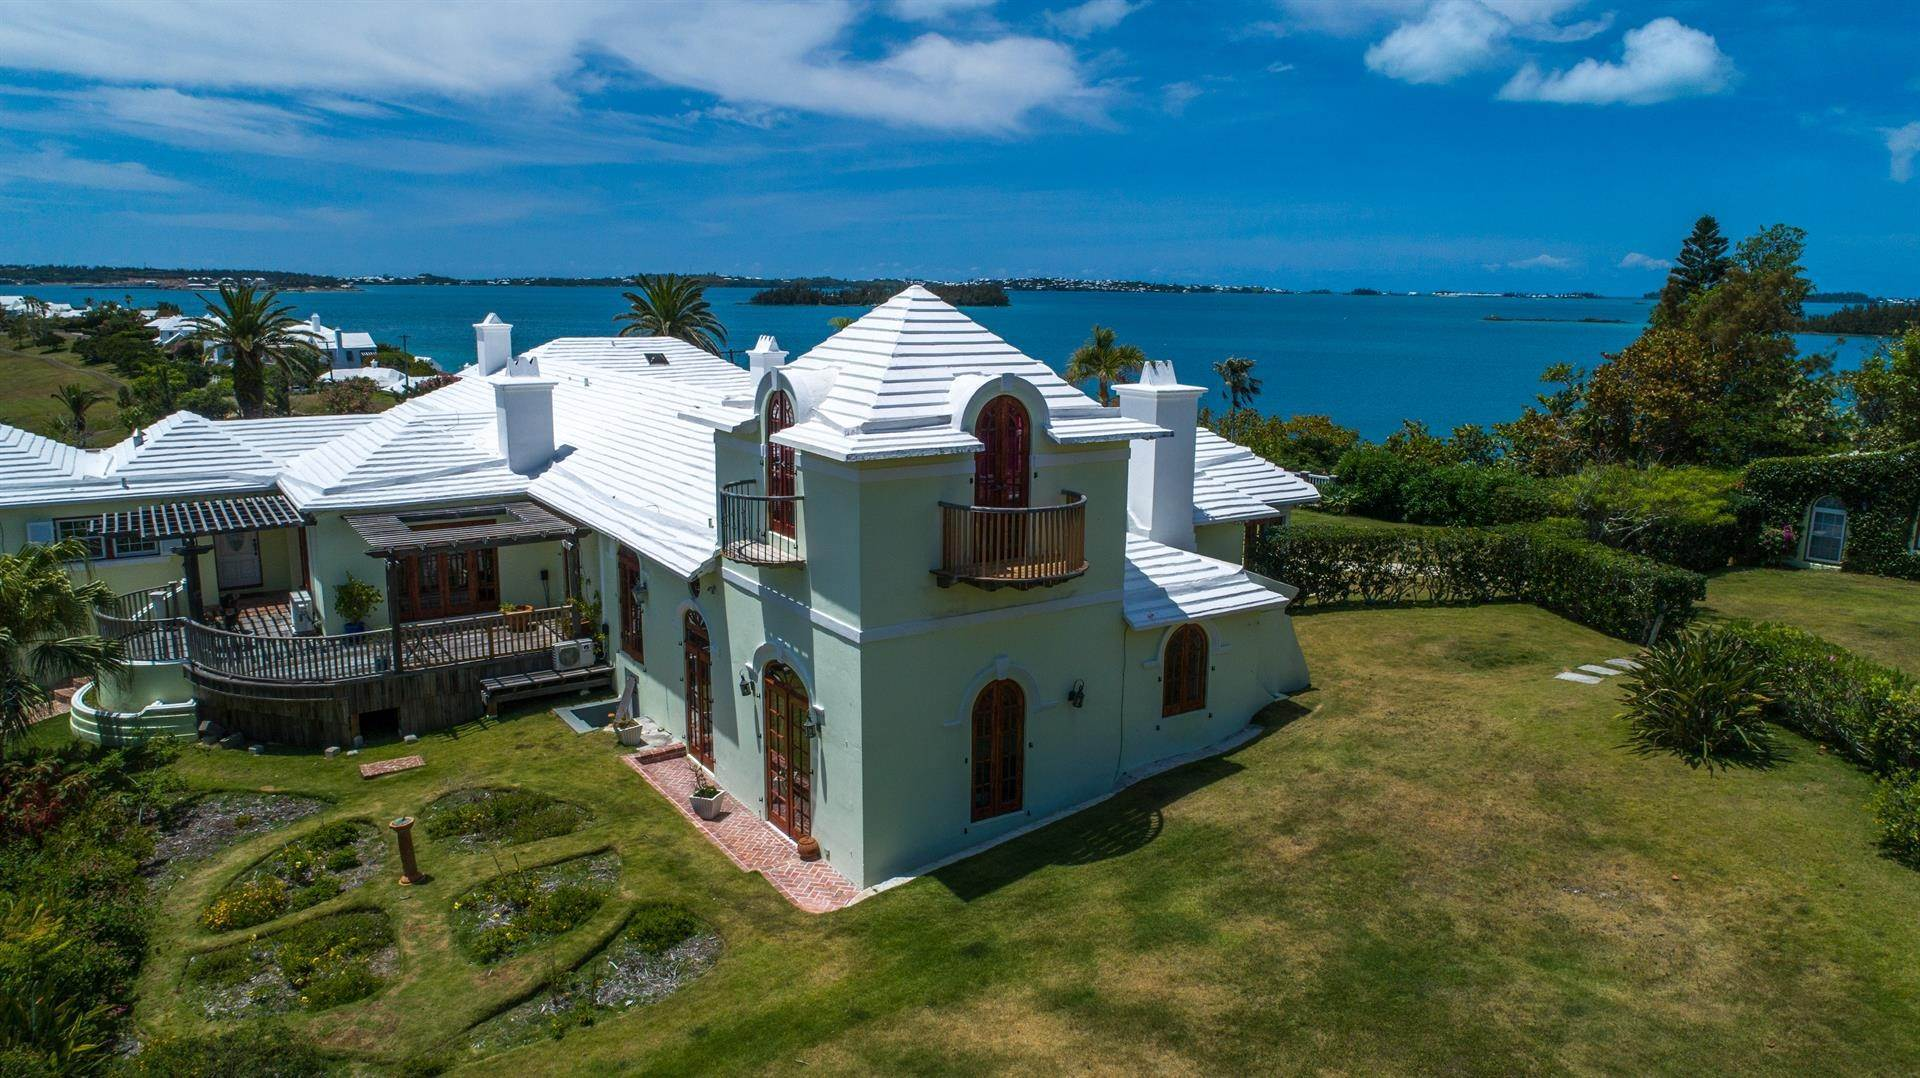 9. Vid Vattnet för Försäljning vid Heron Hill On The Great Sound Heron Hill On The Great Sound, 31 Riddell's Bay Road,Bermuda – Sinclair Realty